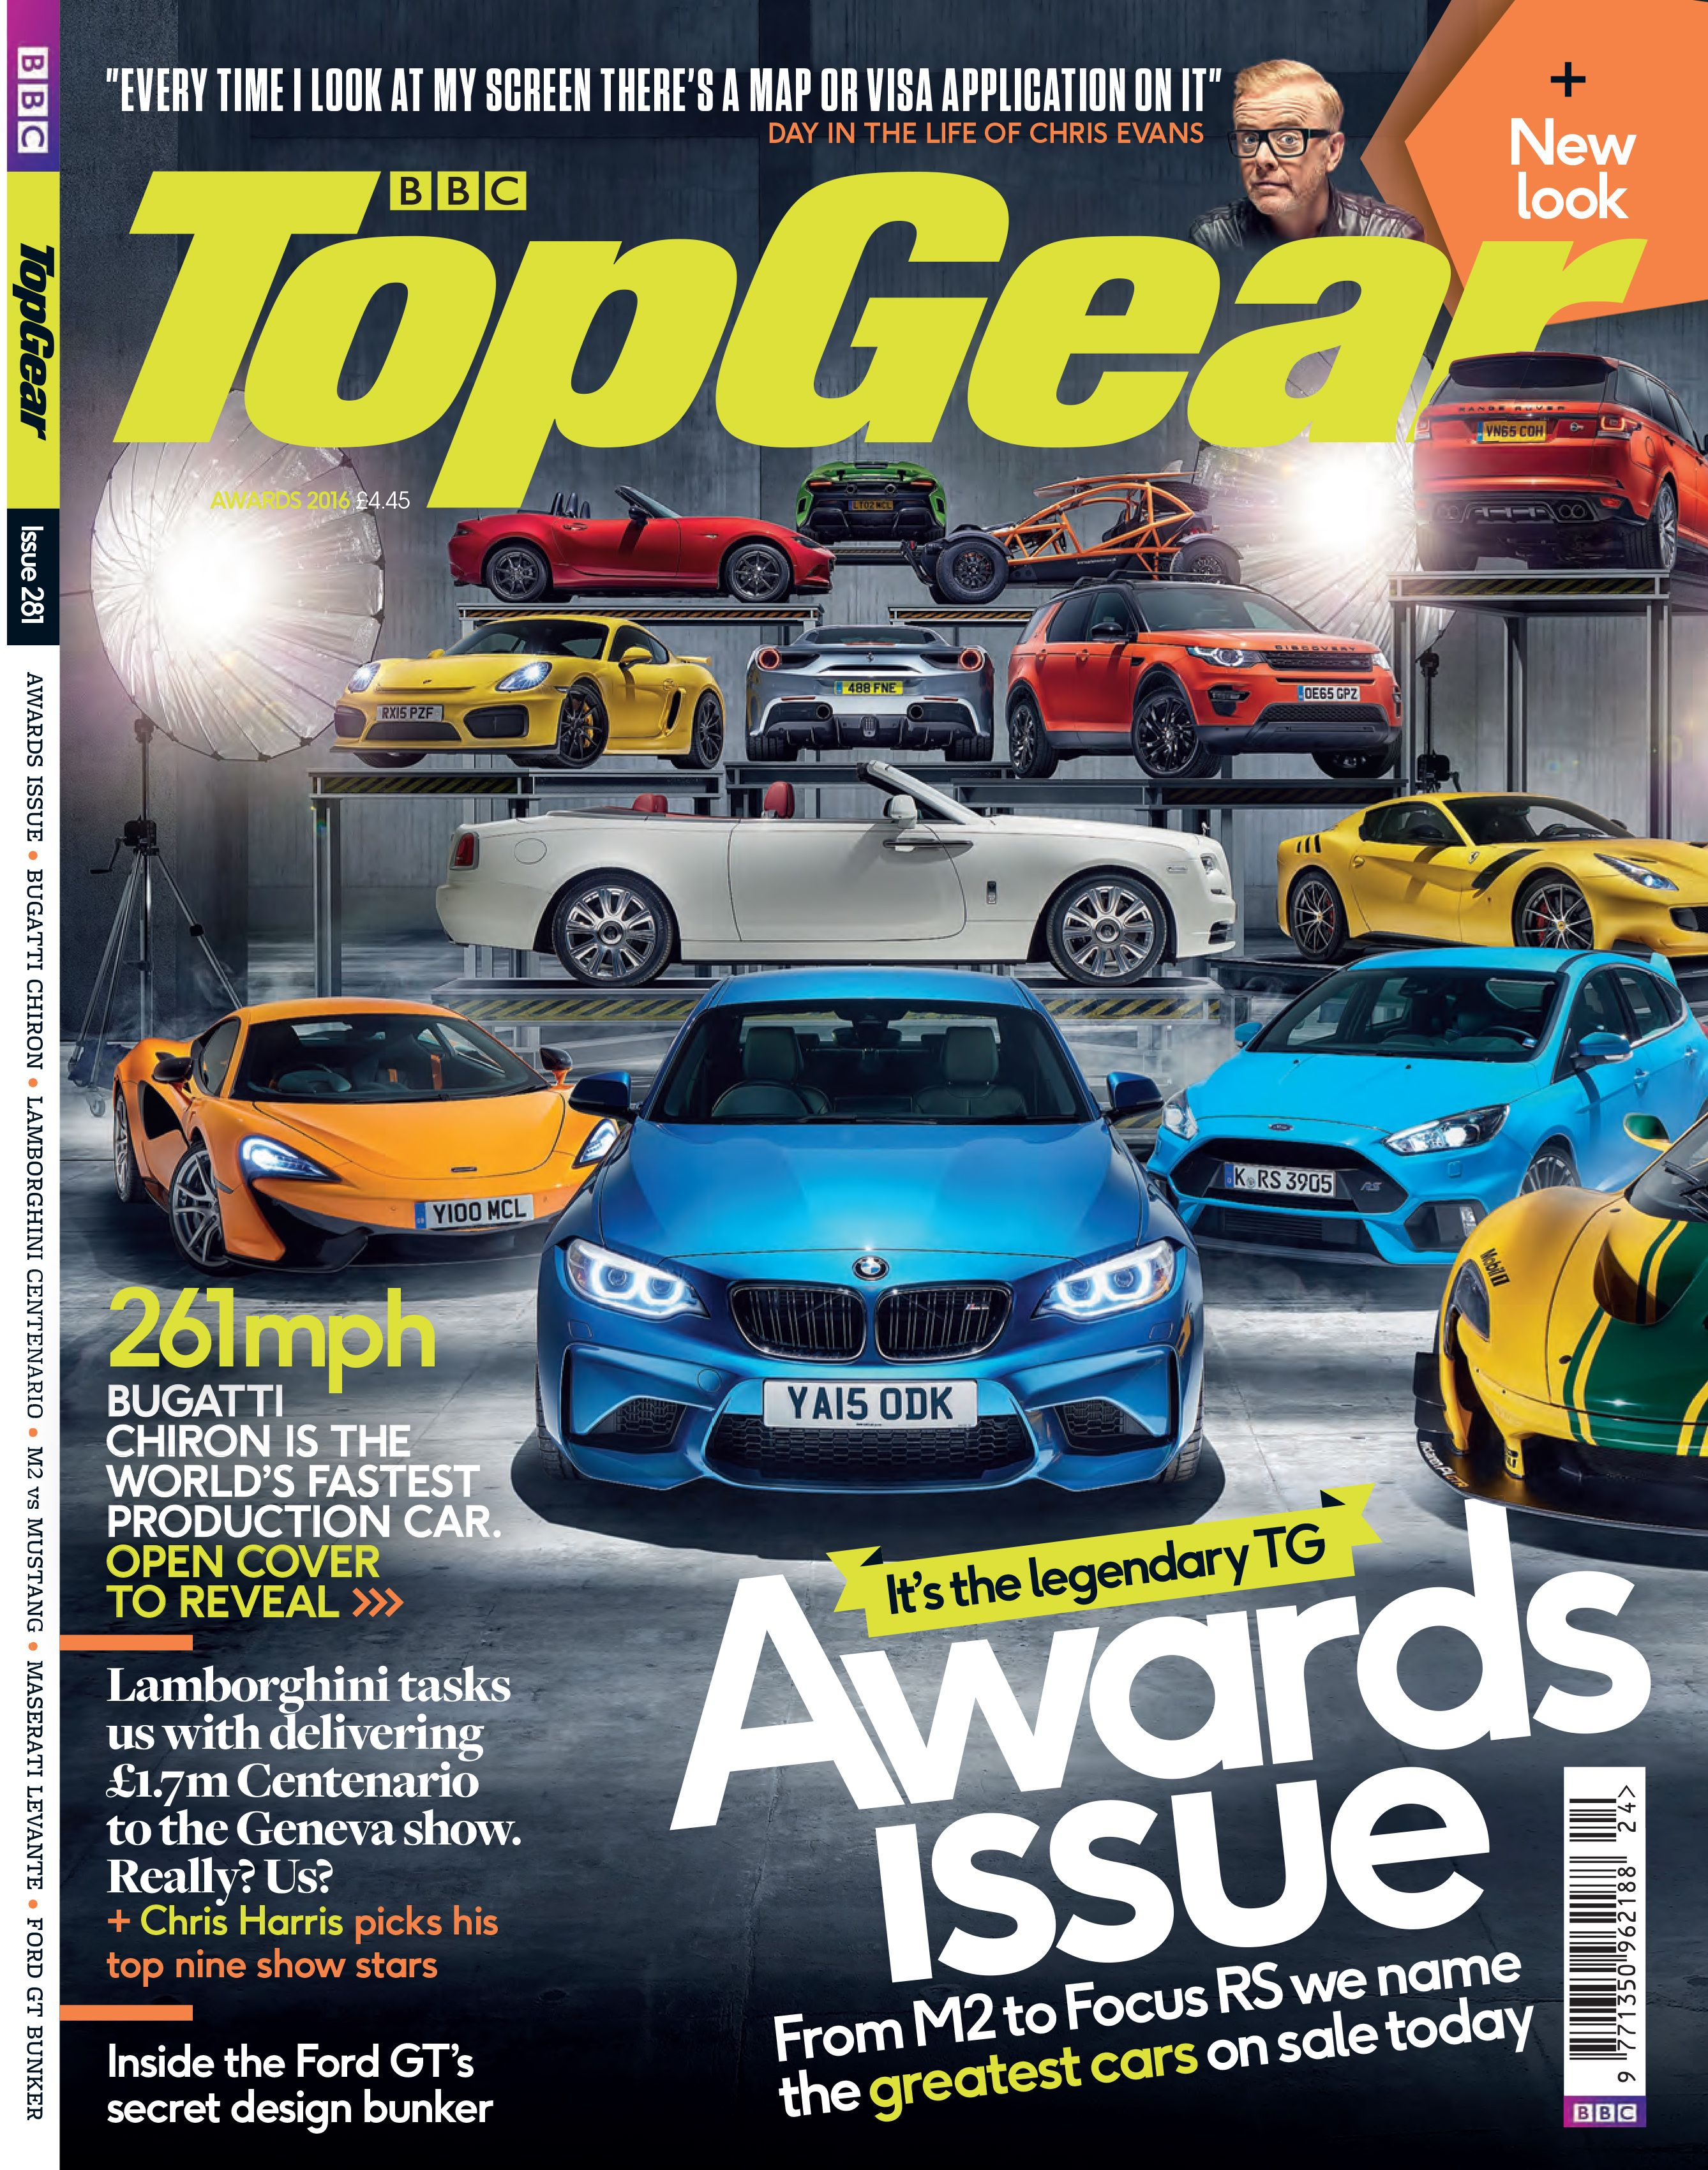 Get the NEW LOOK Top Gear magazine Awards issue! Naming the ...